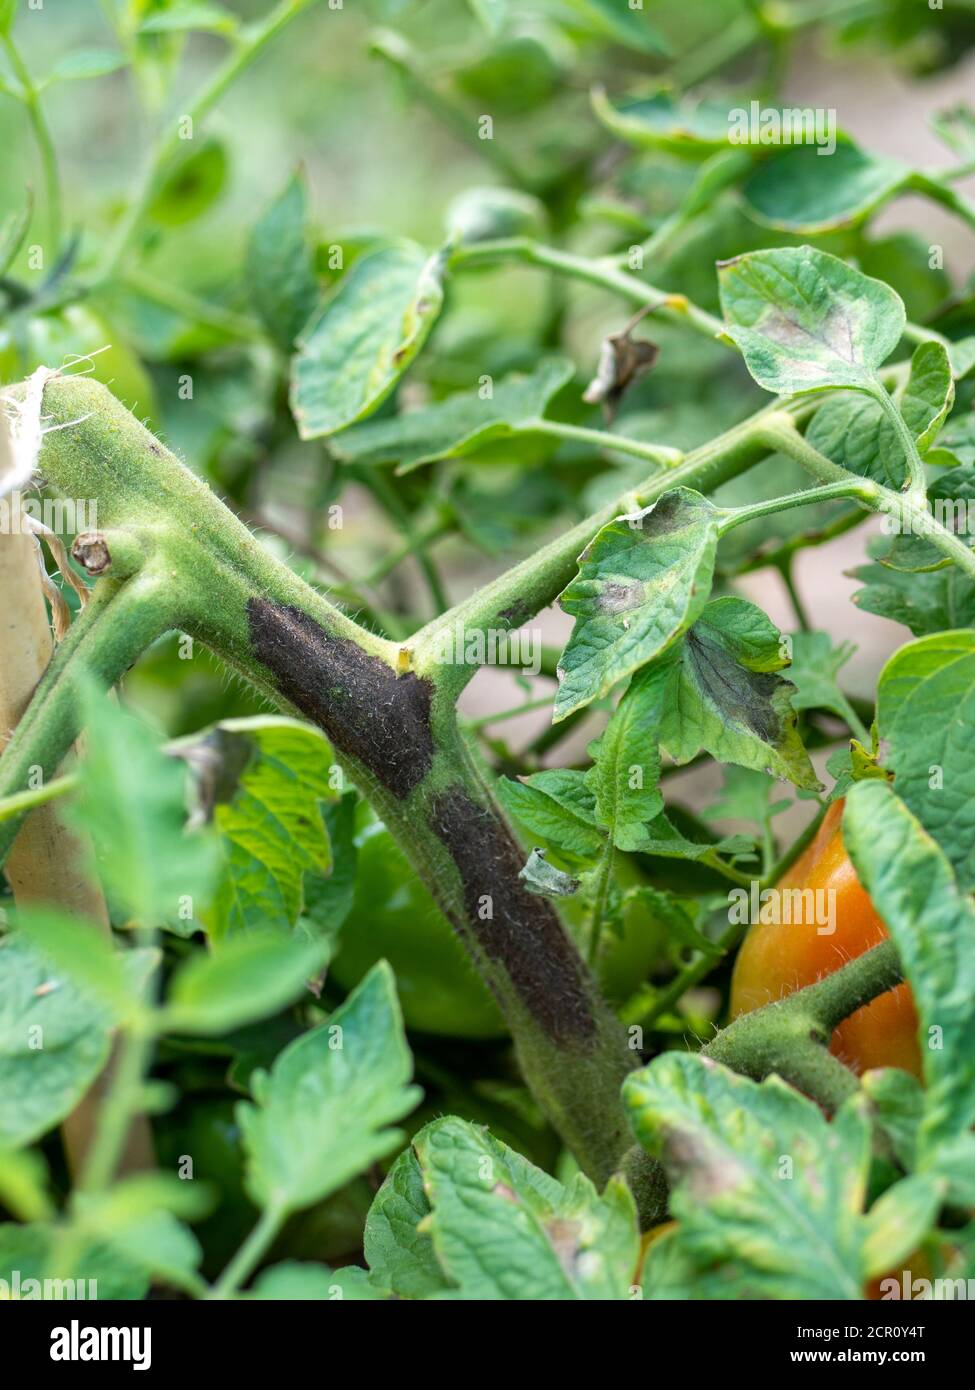 Tomato stem rot caused by the fungus  Didymella lycopersici Stock Photo